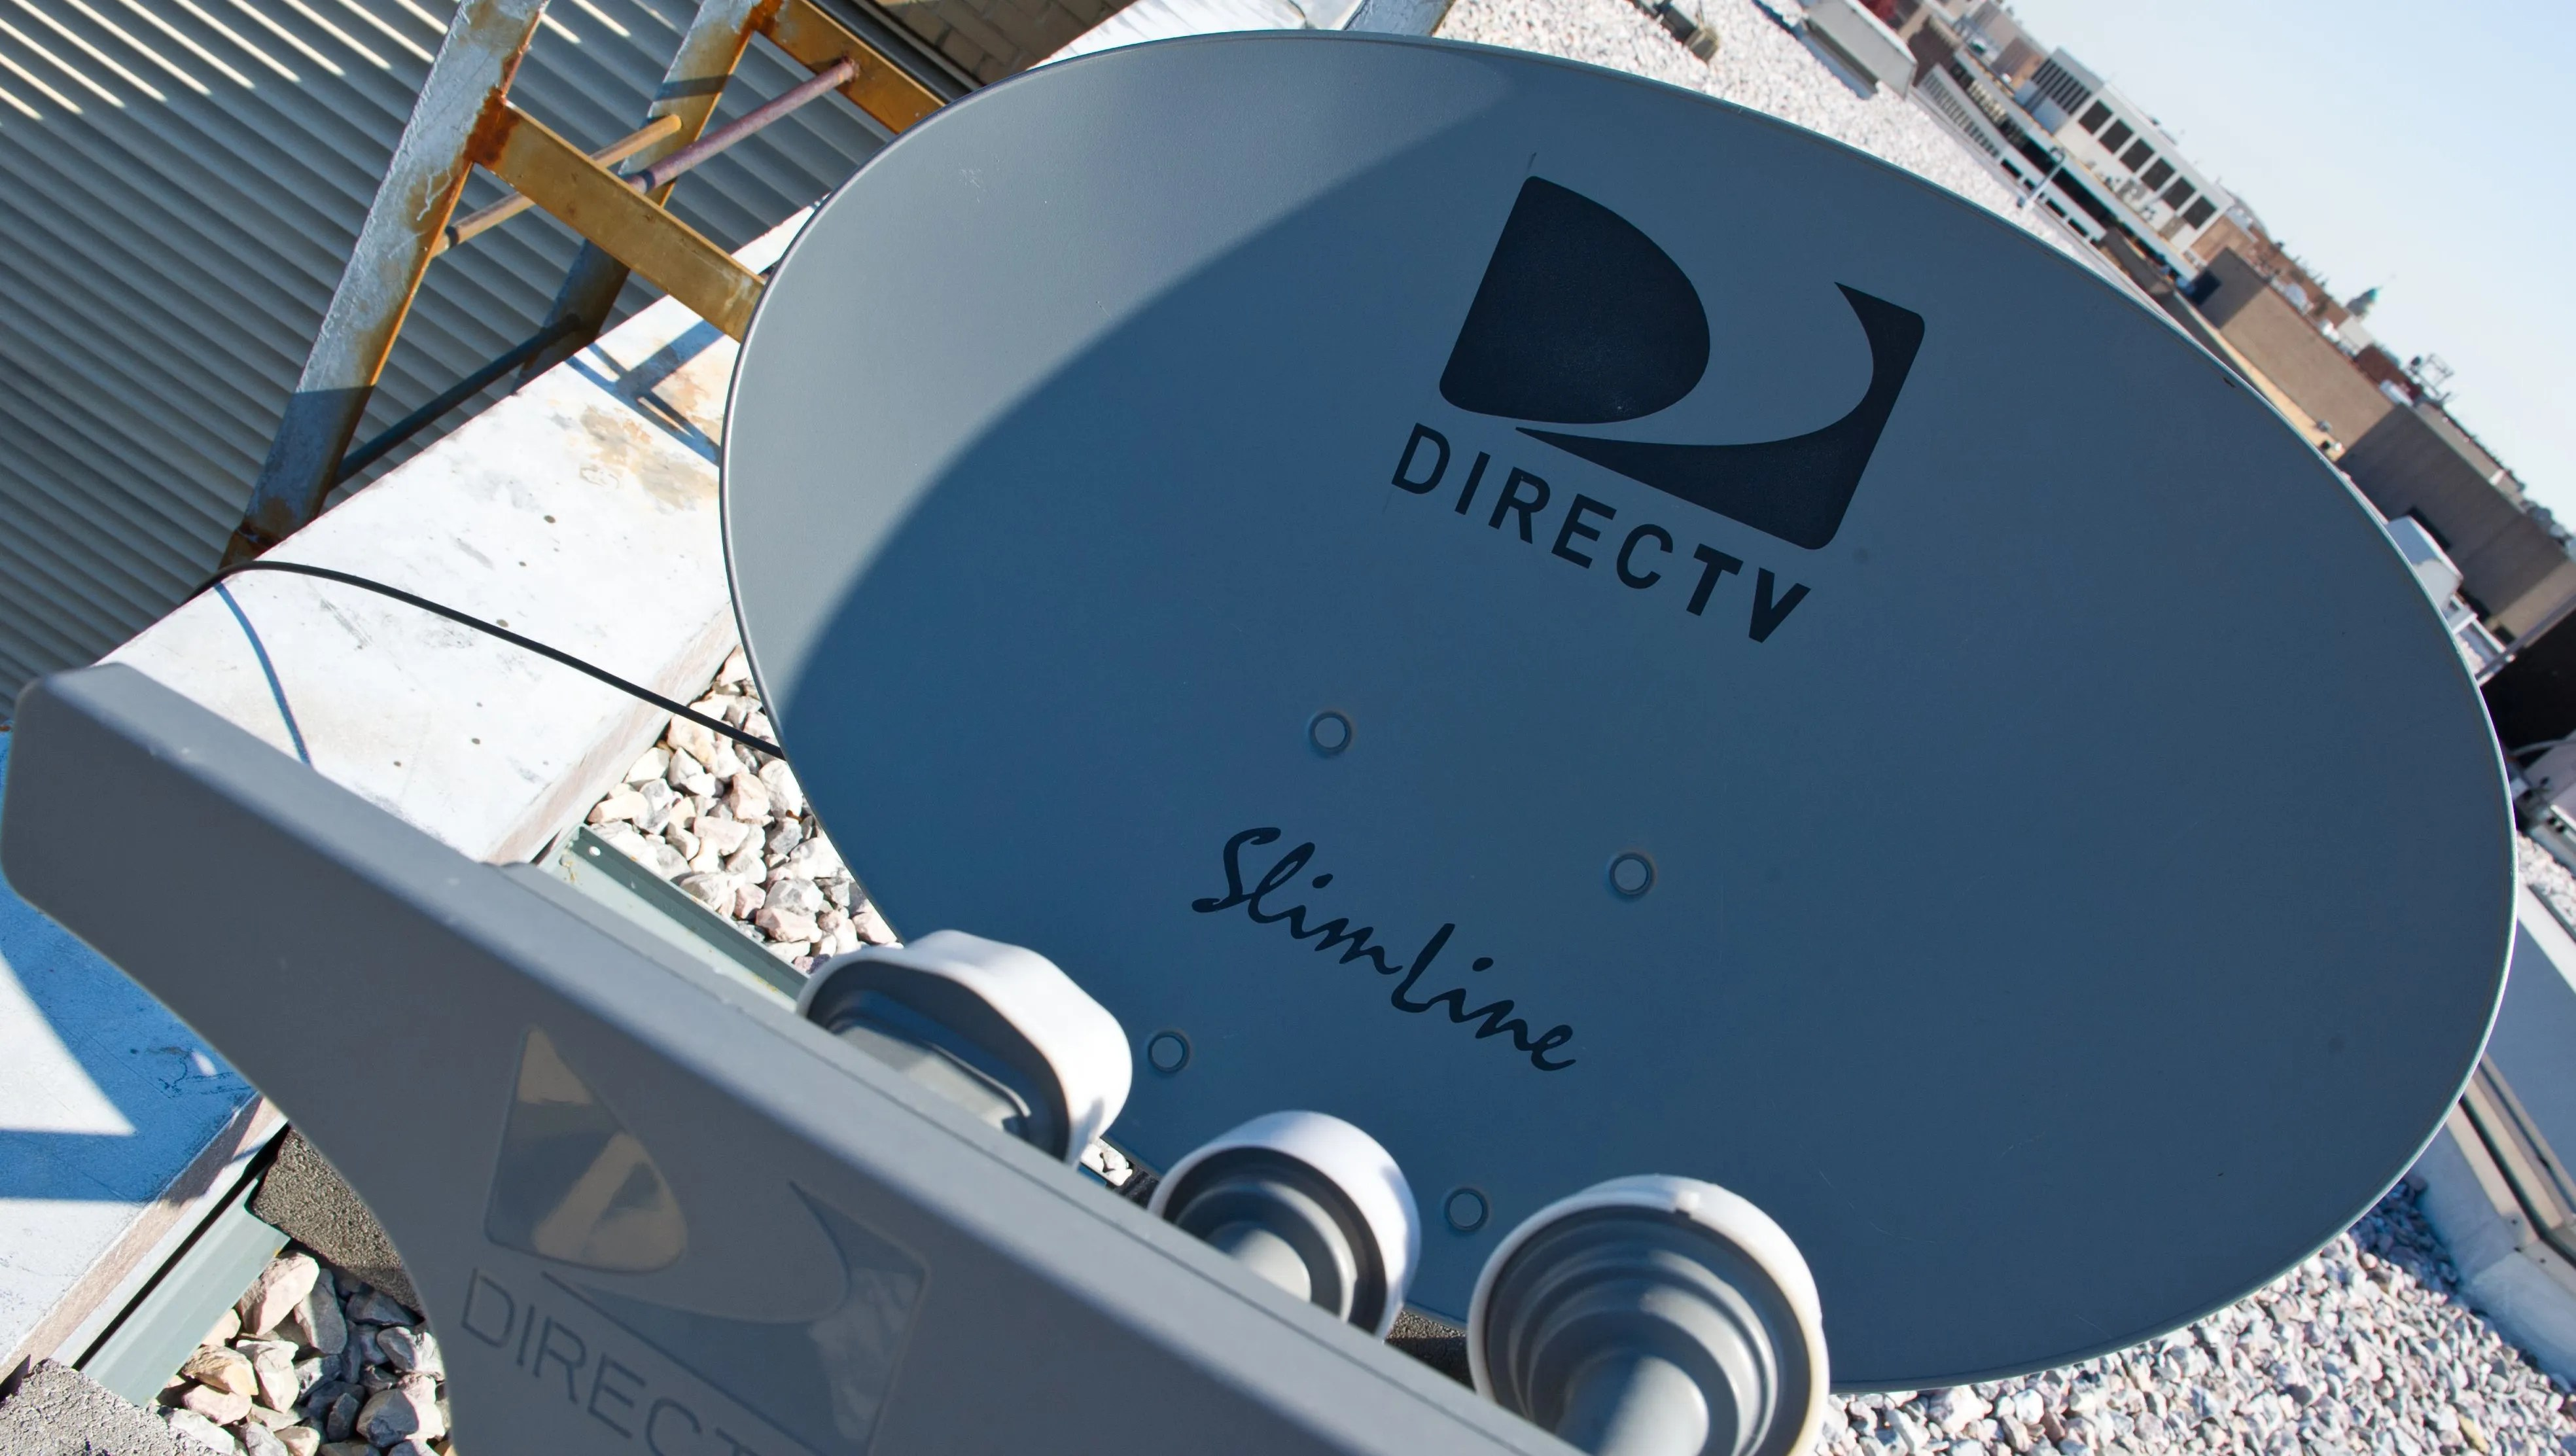 We found out why more satellite customers cut cord - higher fees from DirecTV and Dish